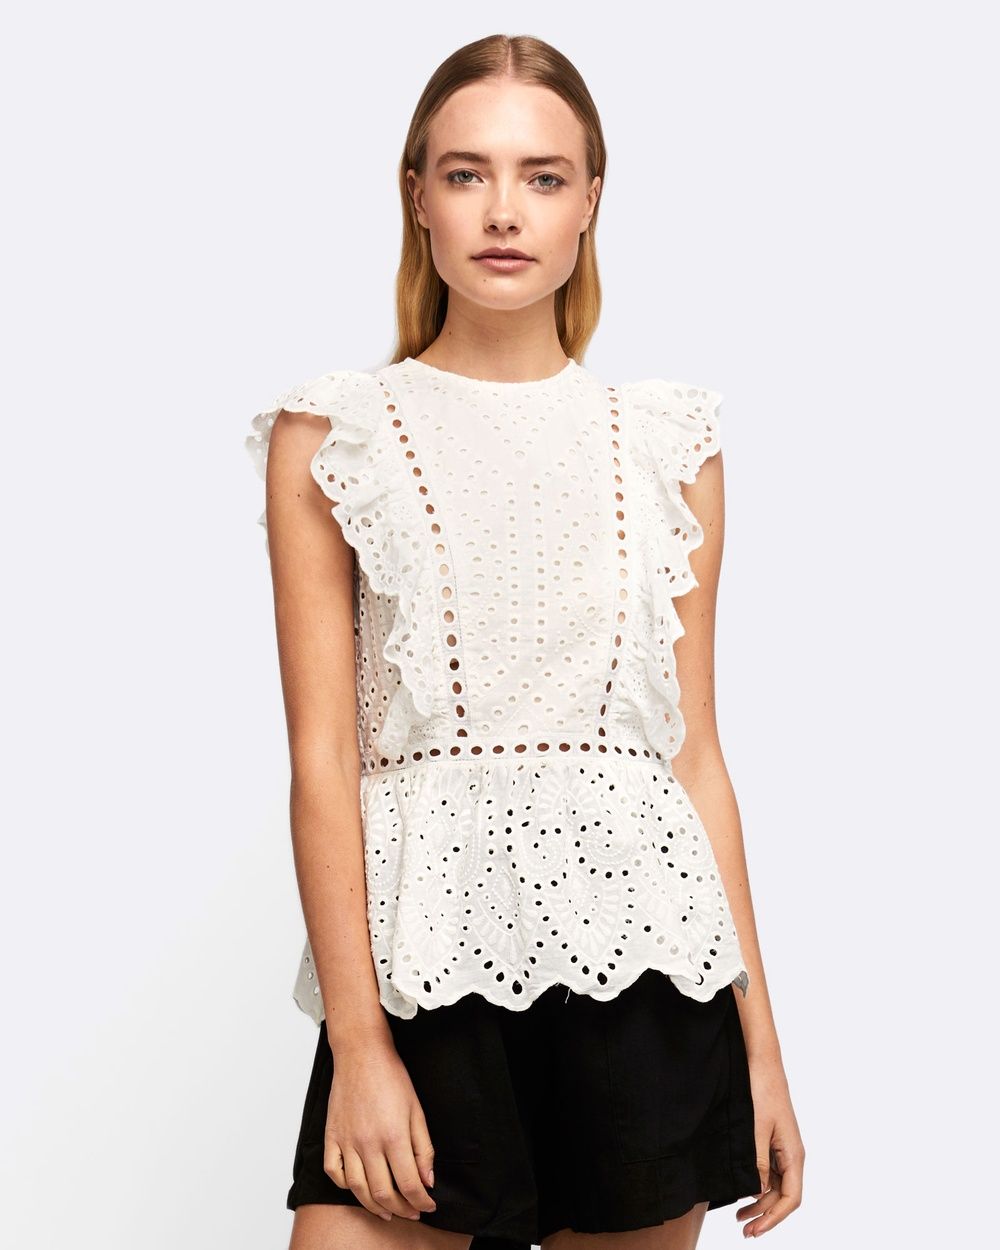 MVN Ciao Bella Lace Top Tops White Ciao Bella Lace Top